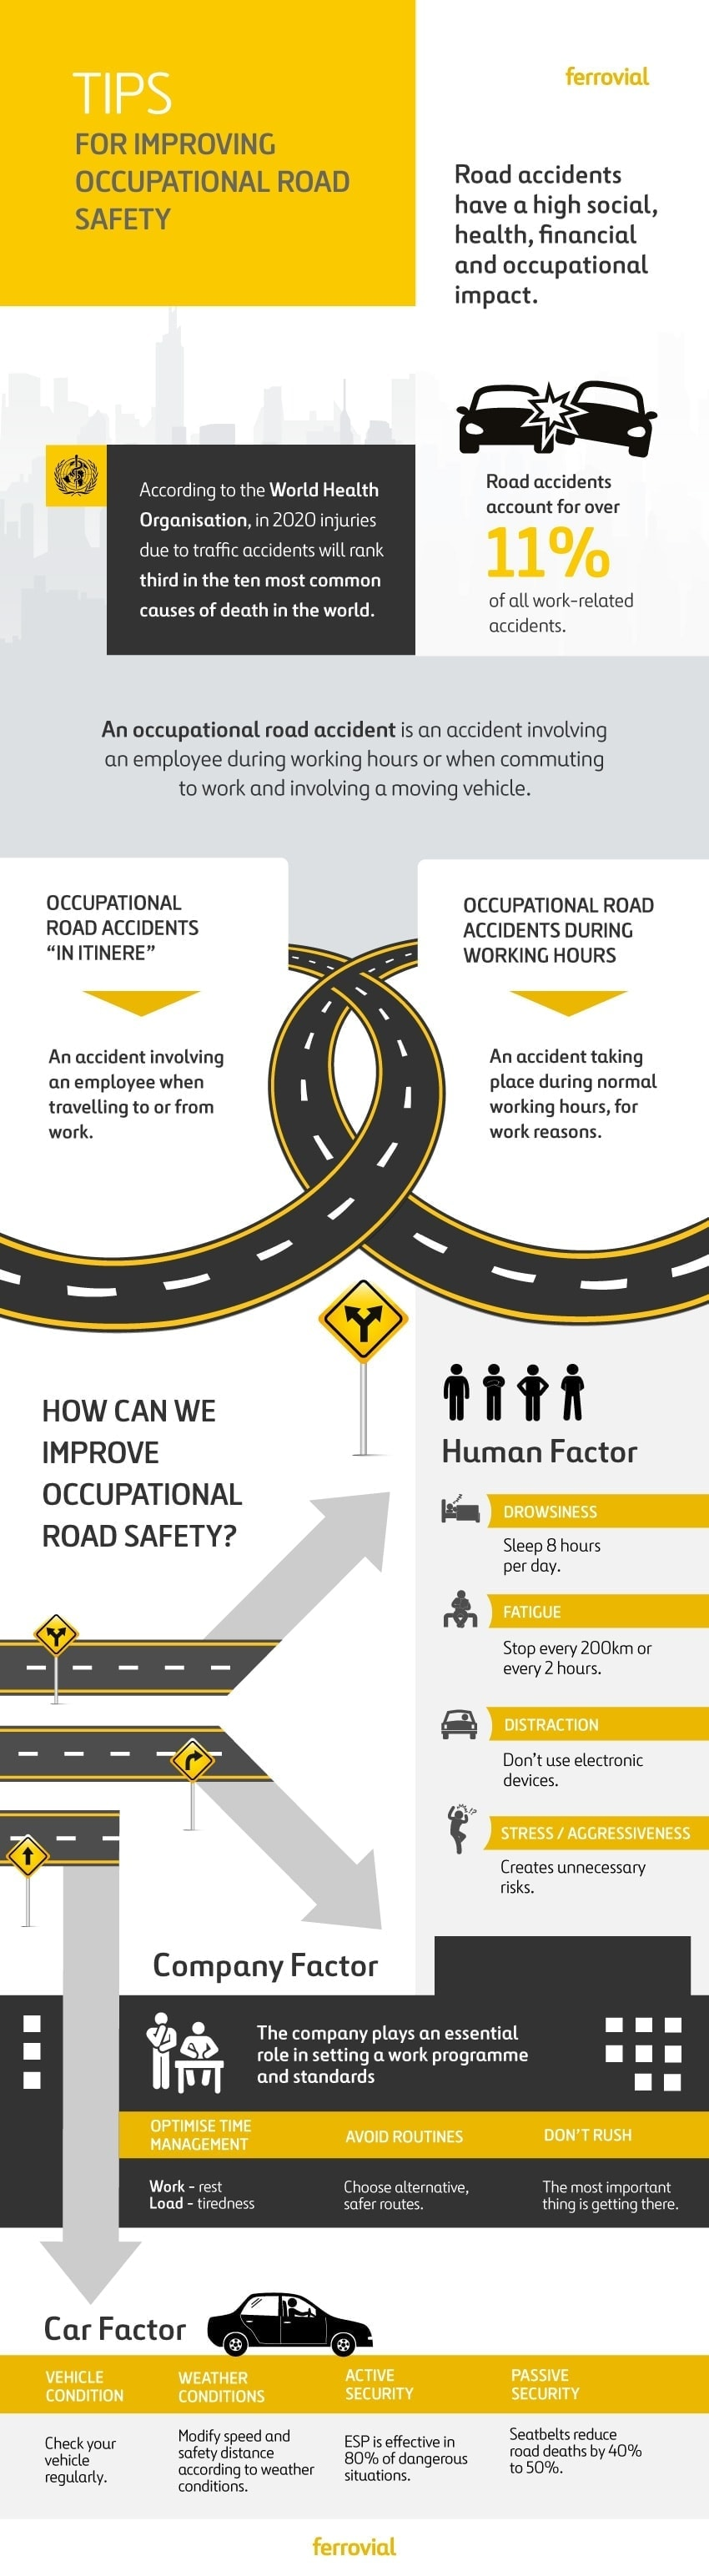 work realted road safety ferrovcial